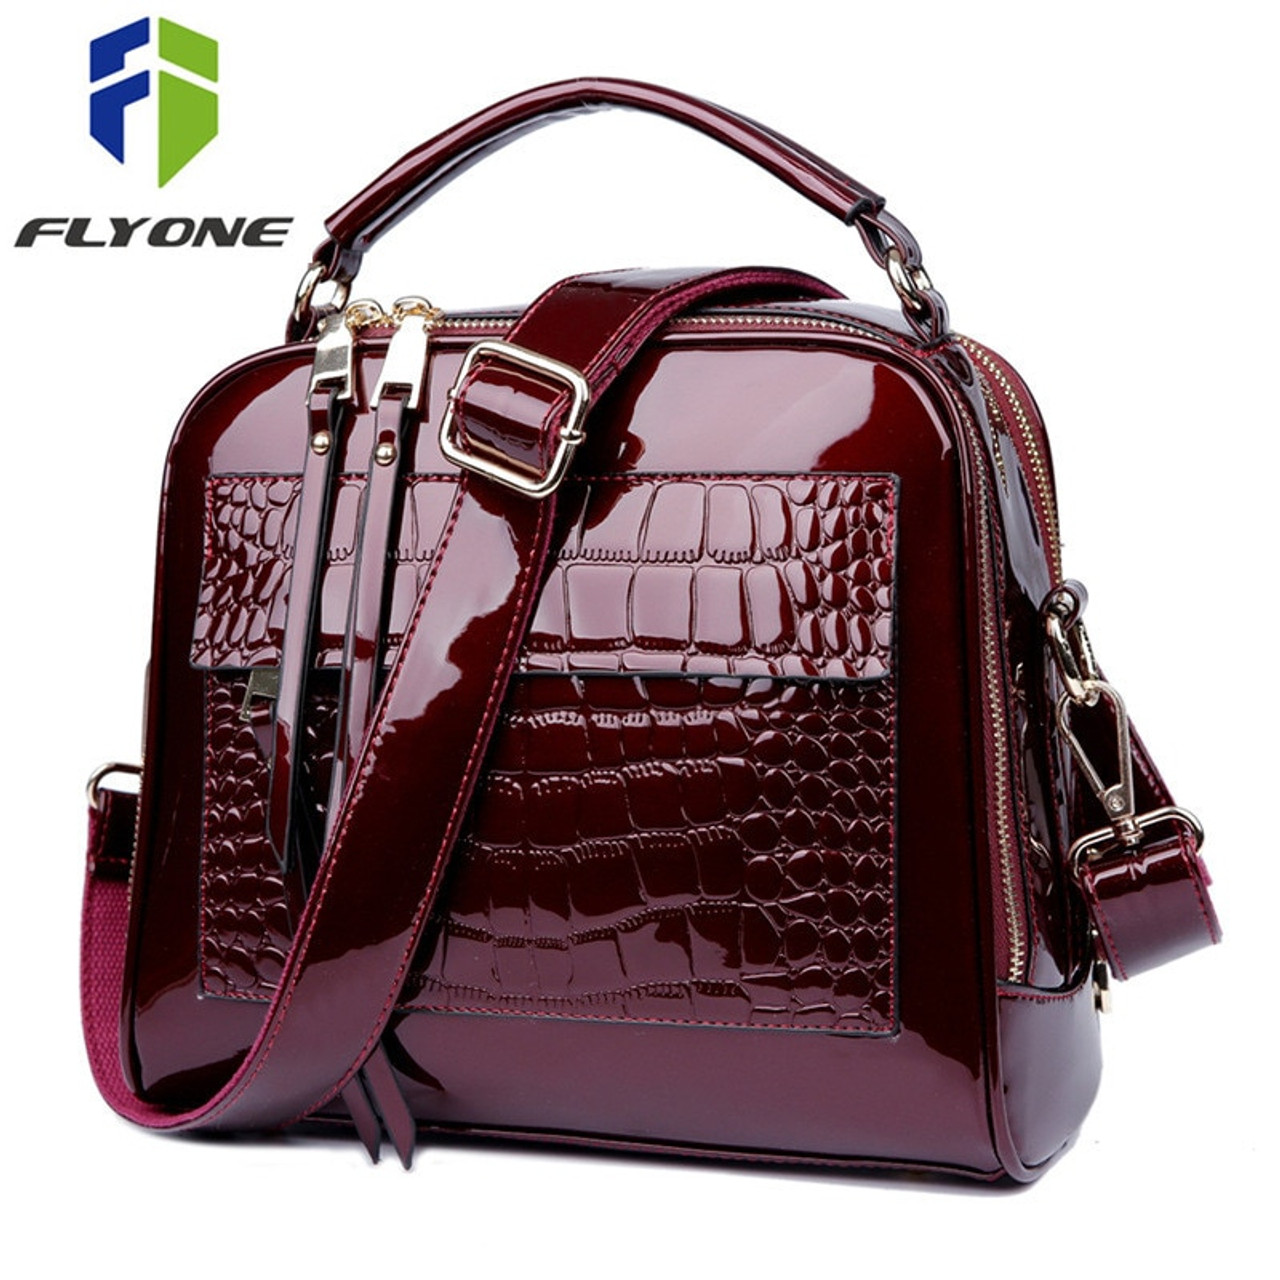 c83851d31a23 Luxury Handbags Women Bags Designer Crossbody Bags for Women Shoulder Bag  Crocodile Leather Purse Bolsa Feminina ...